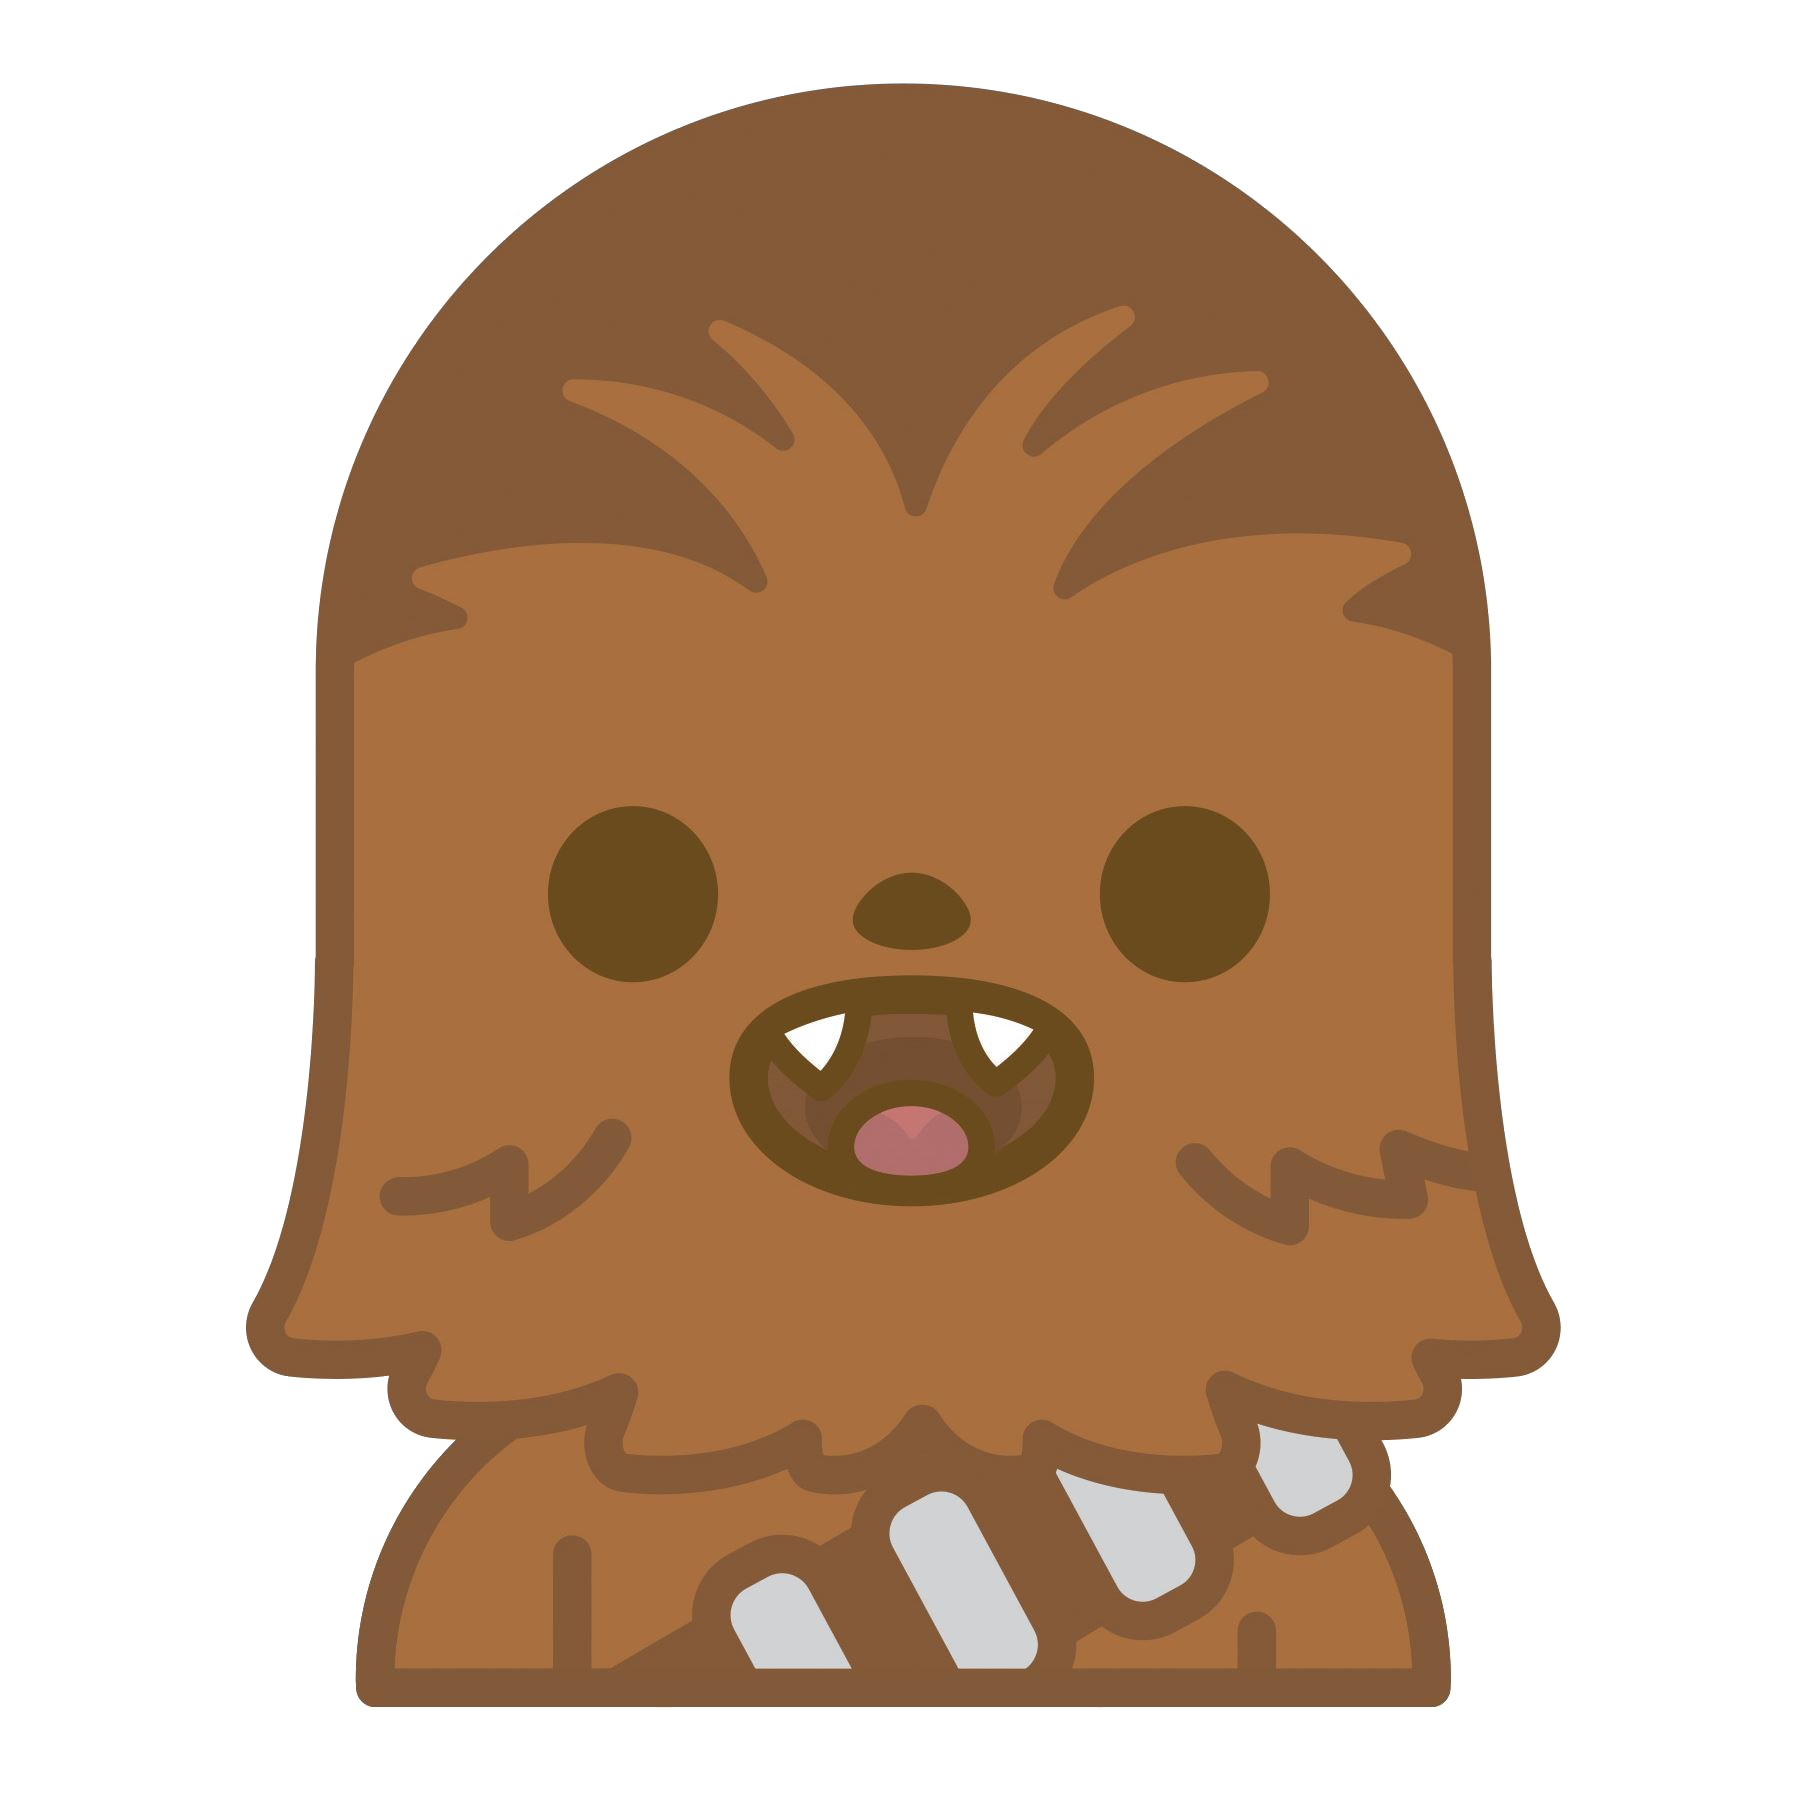 picture transparent download Chewbacca clipart. Star wars emoji